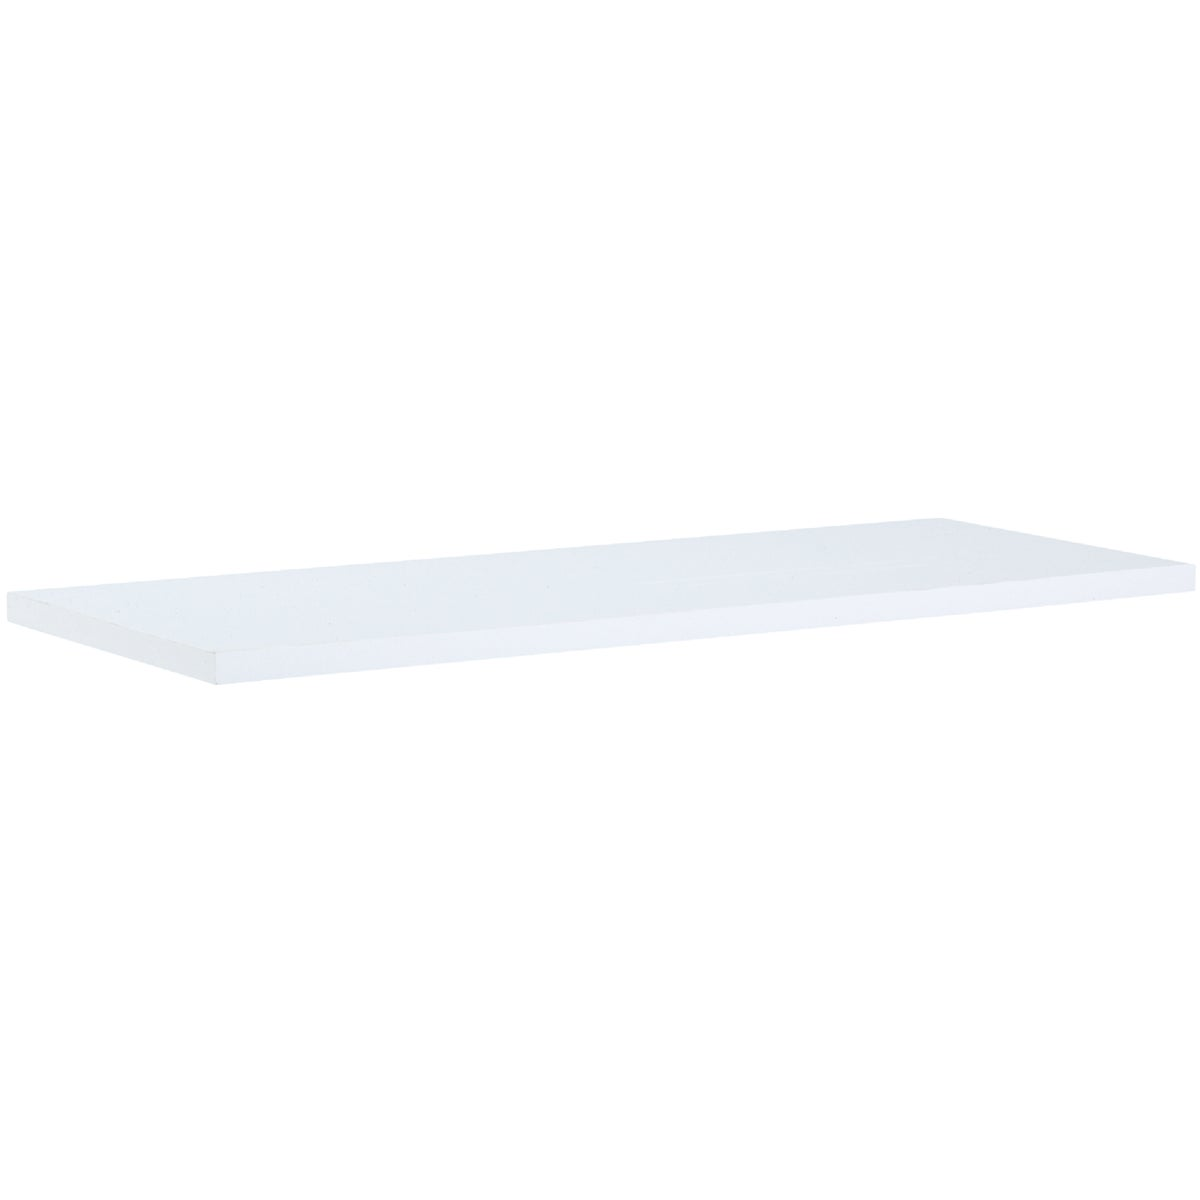 10X24 WHITE SHELF - 1980WH10X24 by Knape & Vogt Mfg Co